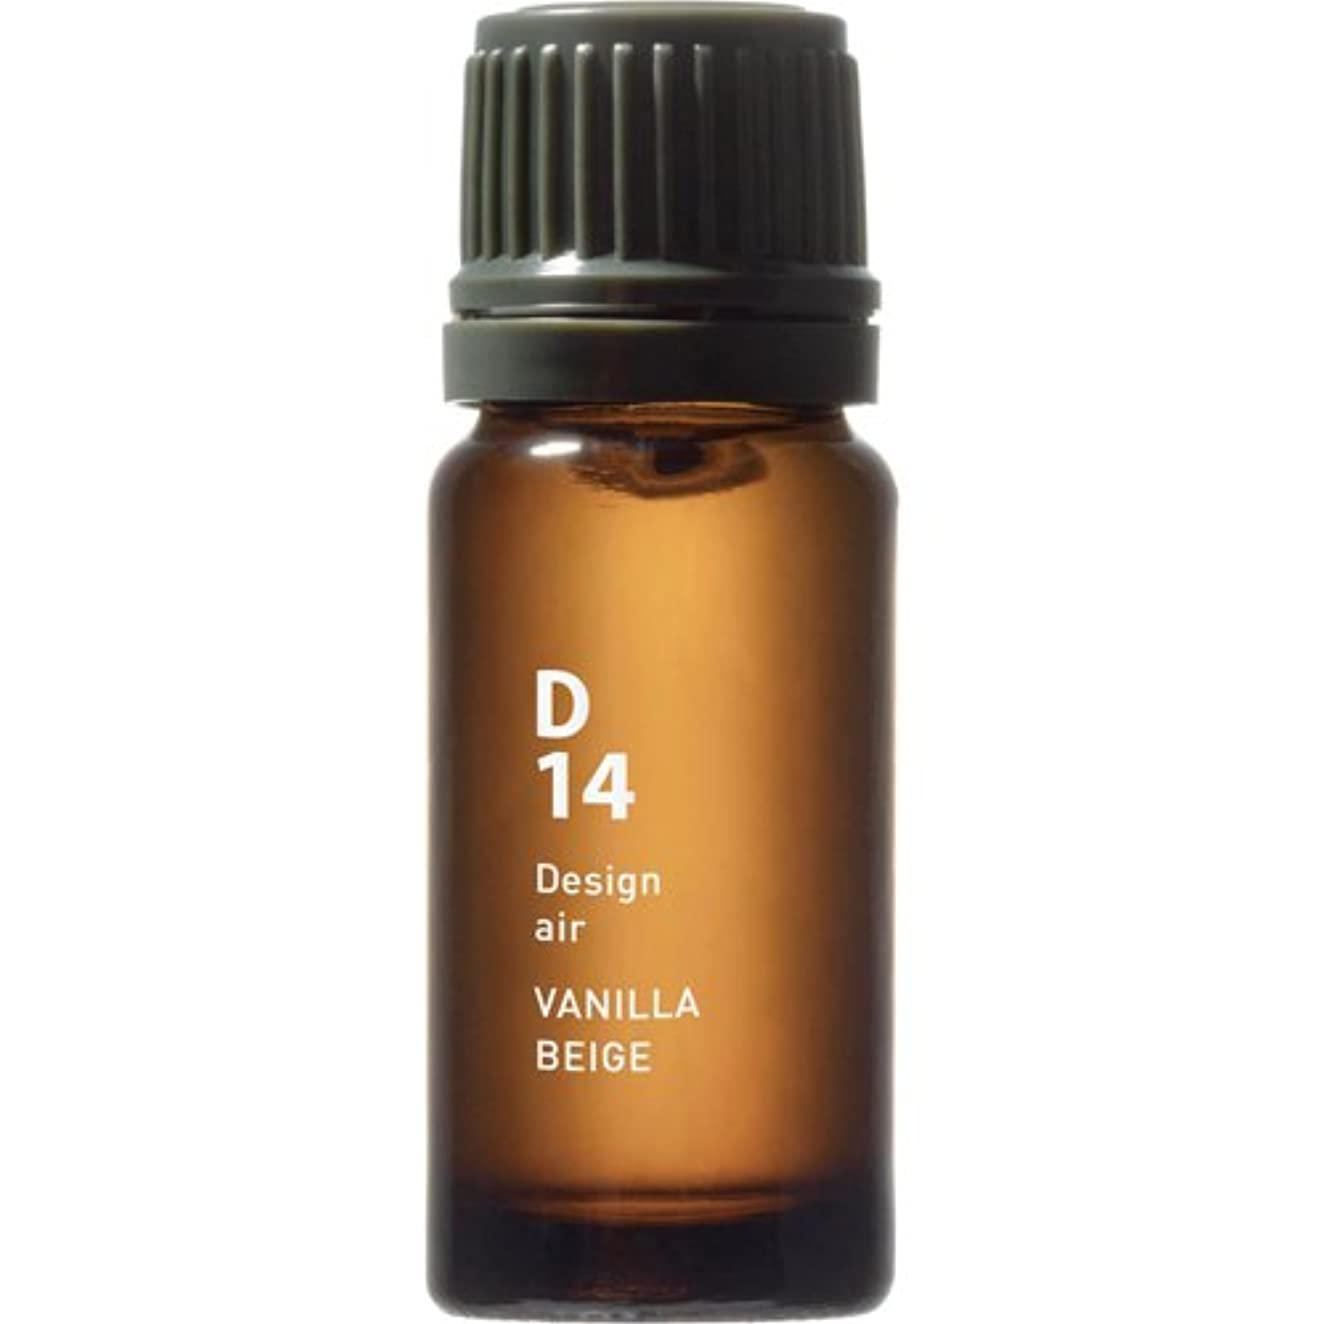 建物建物靴下D14 VANILLA BEIGE Design air 10ml